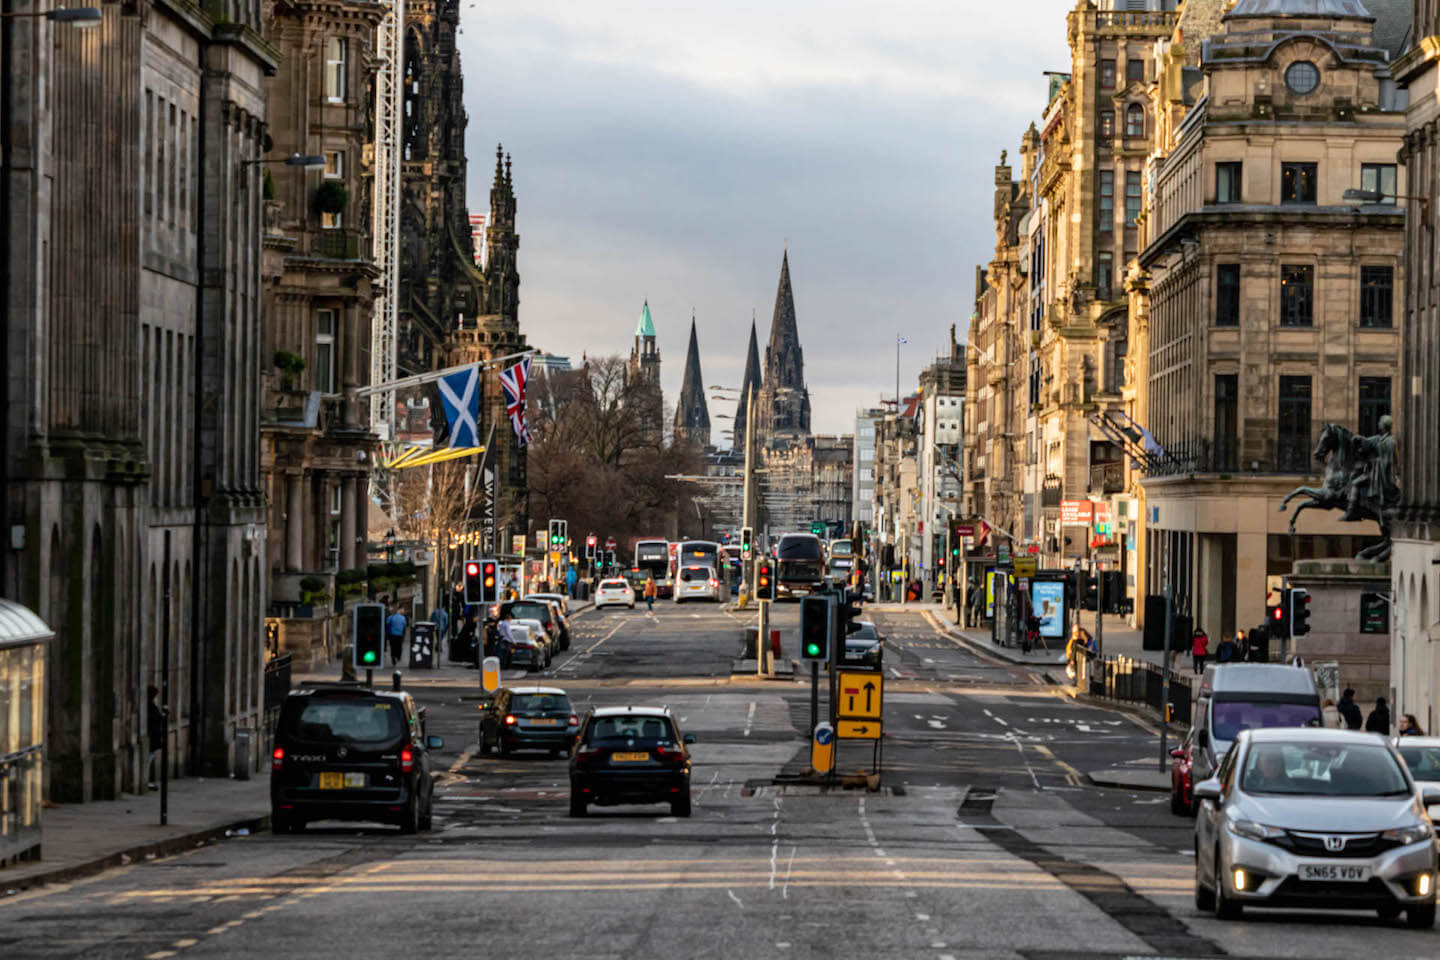 Edimburgo New Town